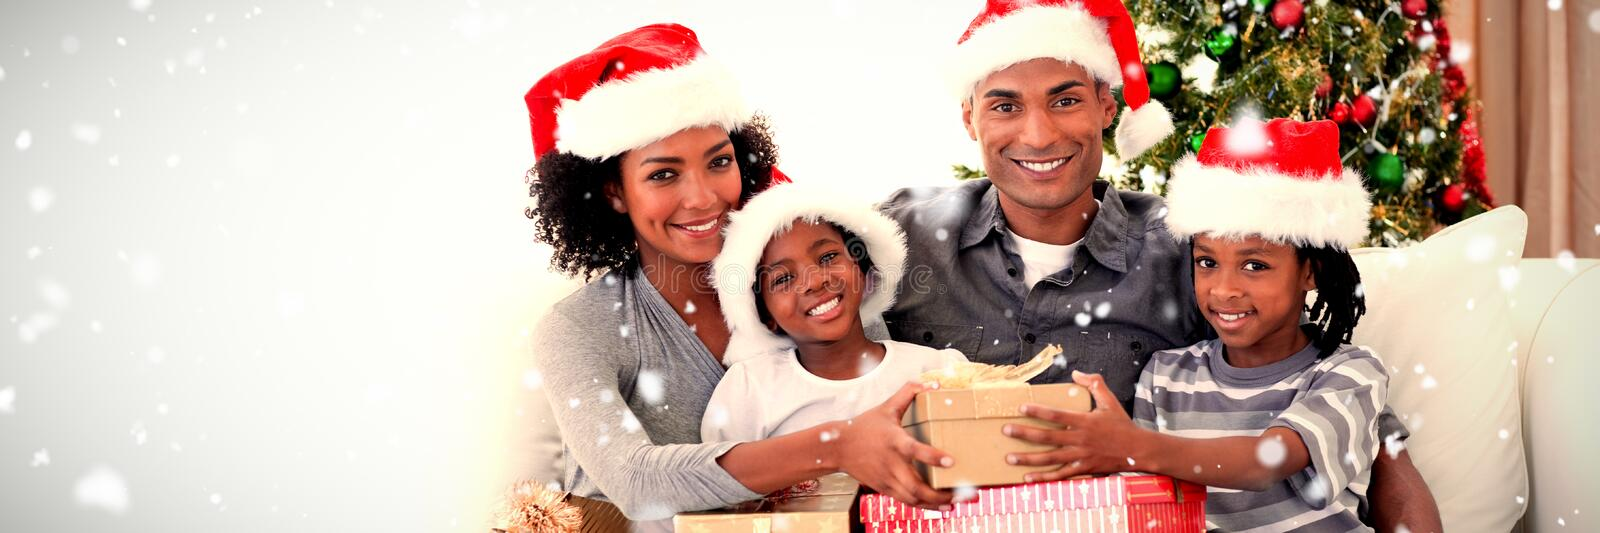 Composite image of smiling family sharing christmas presents royalty free stock image